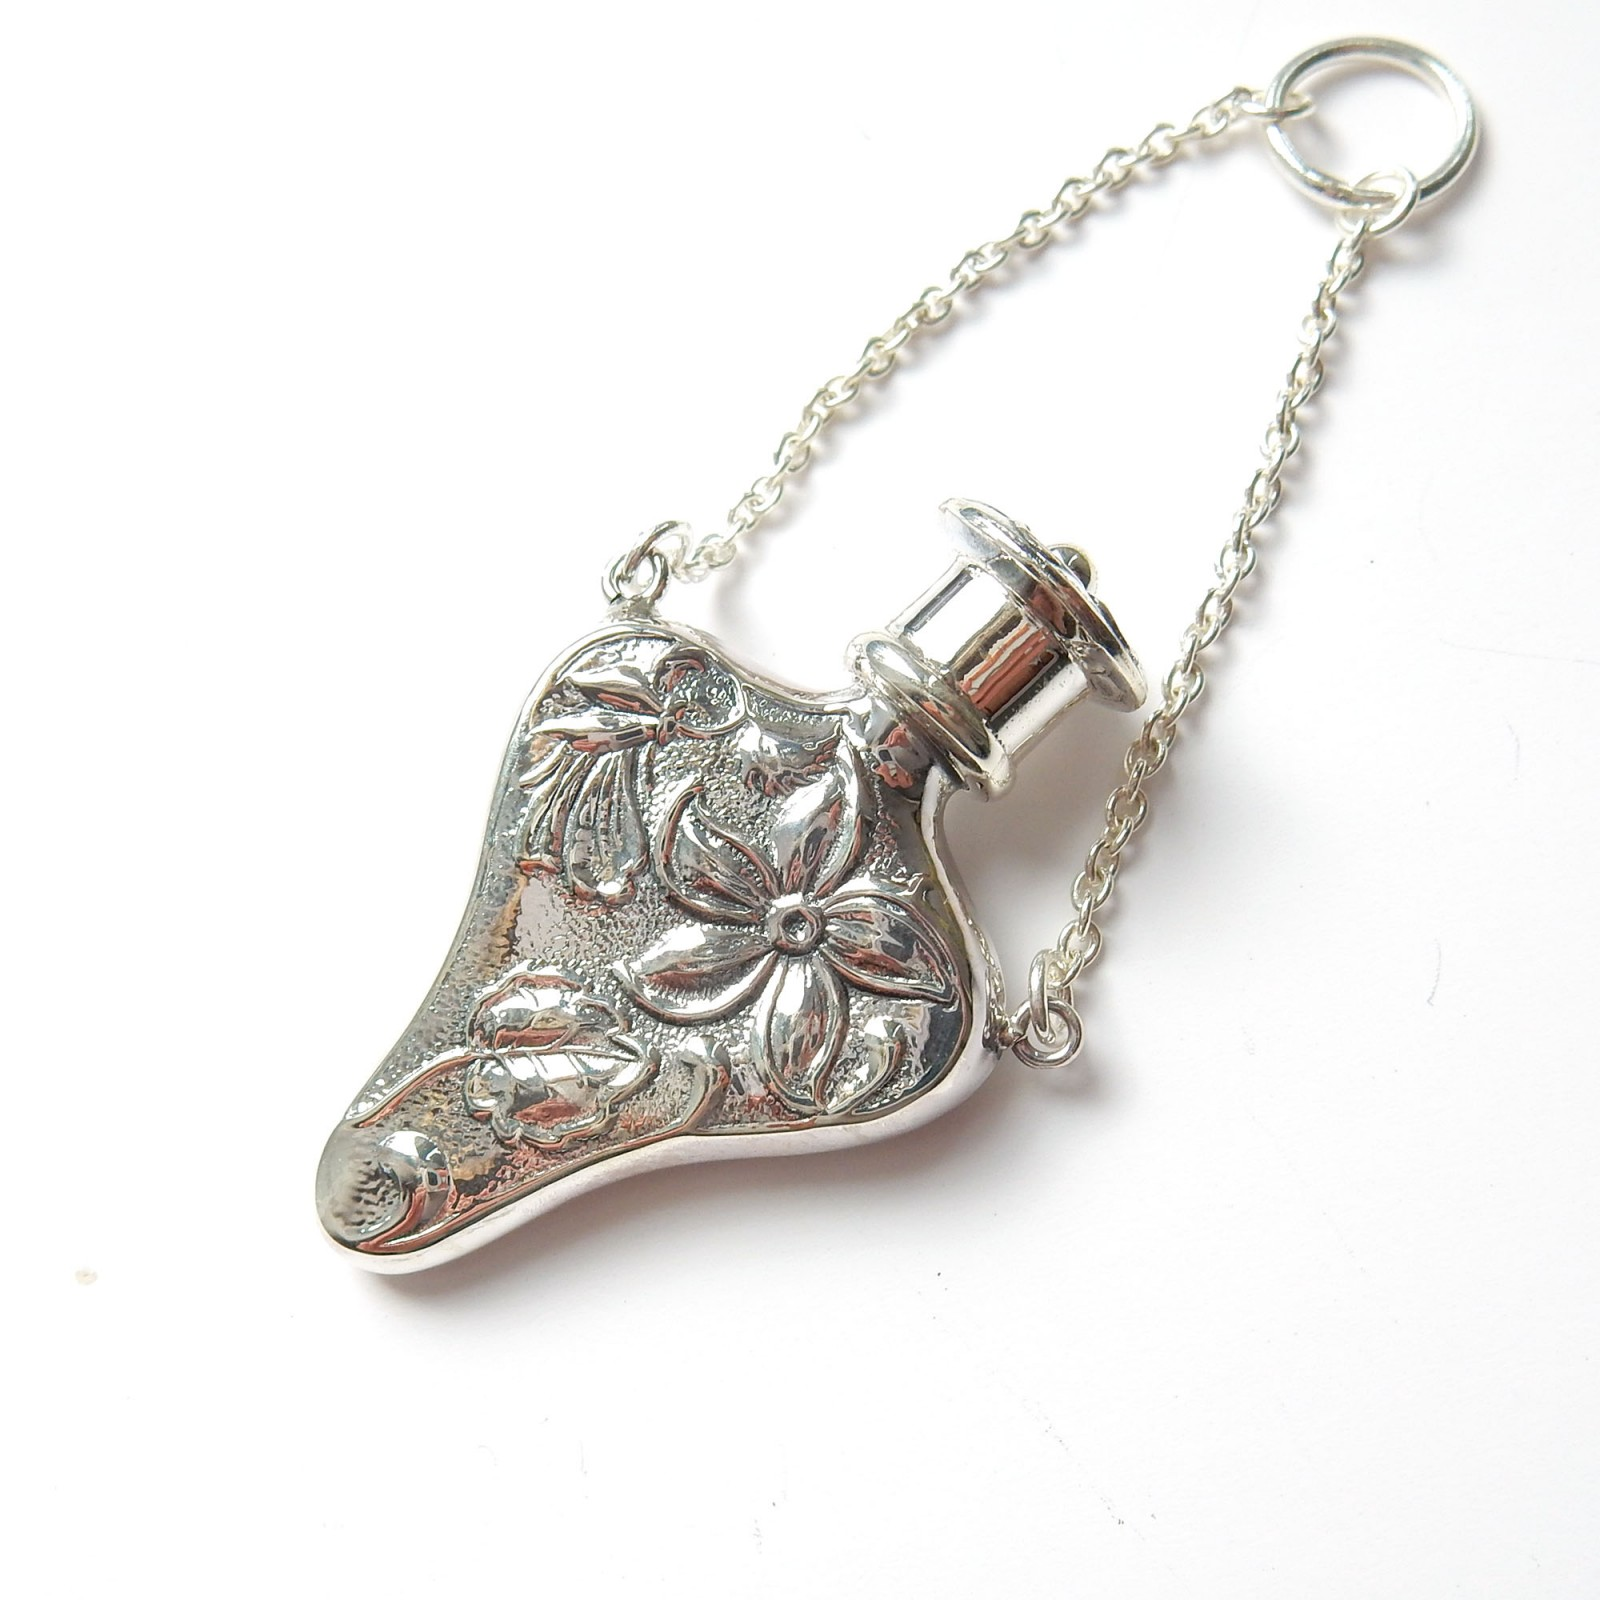 Photo of Vintage Sterling Silver Repousee Chatelaine Scent Bottle Holder